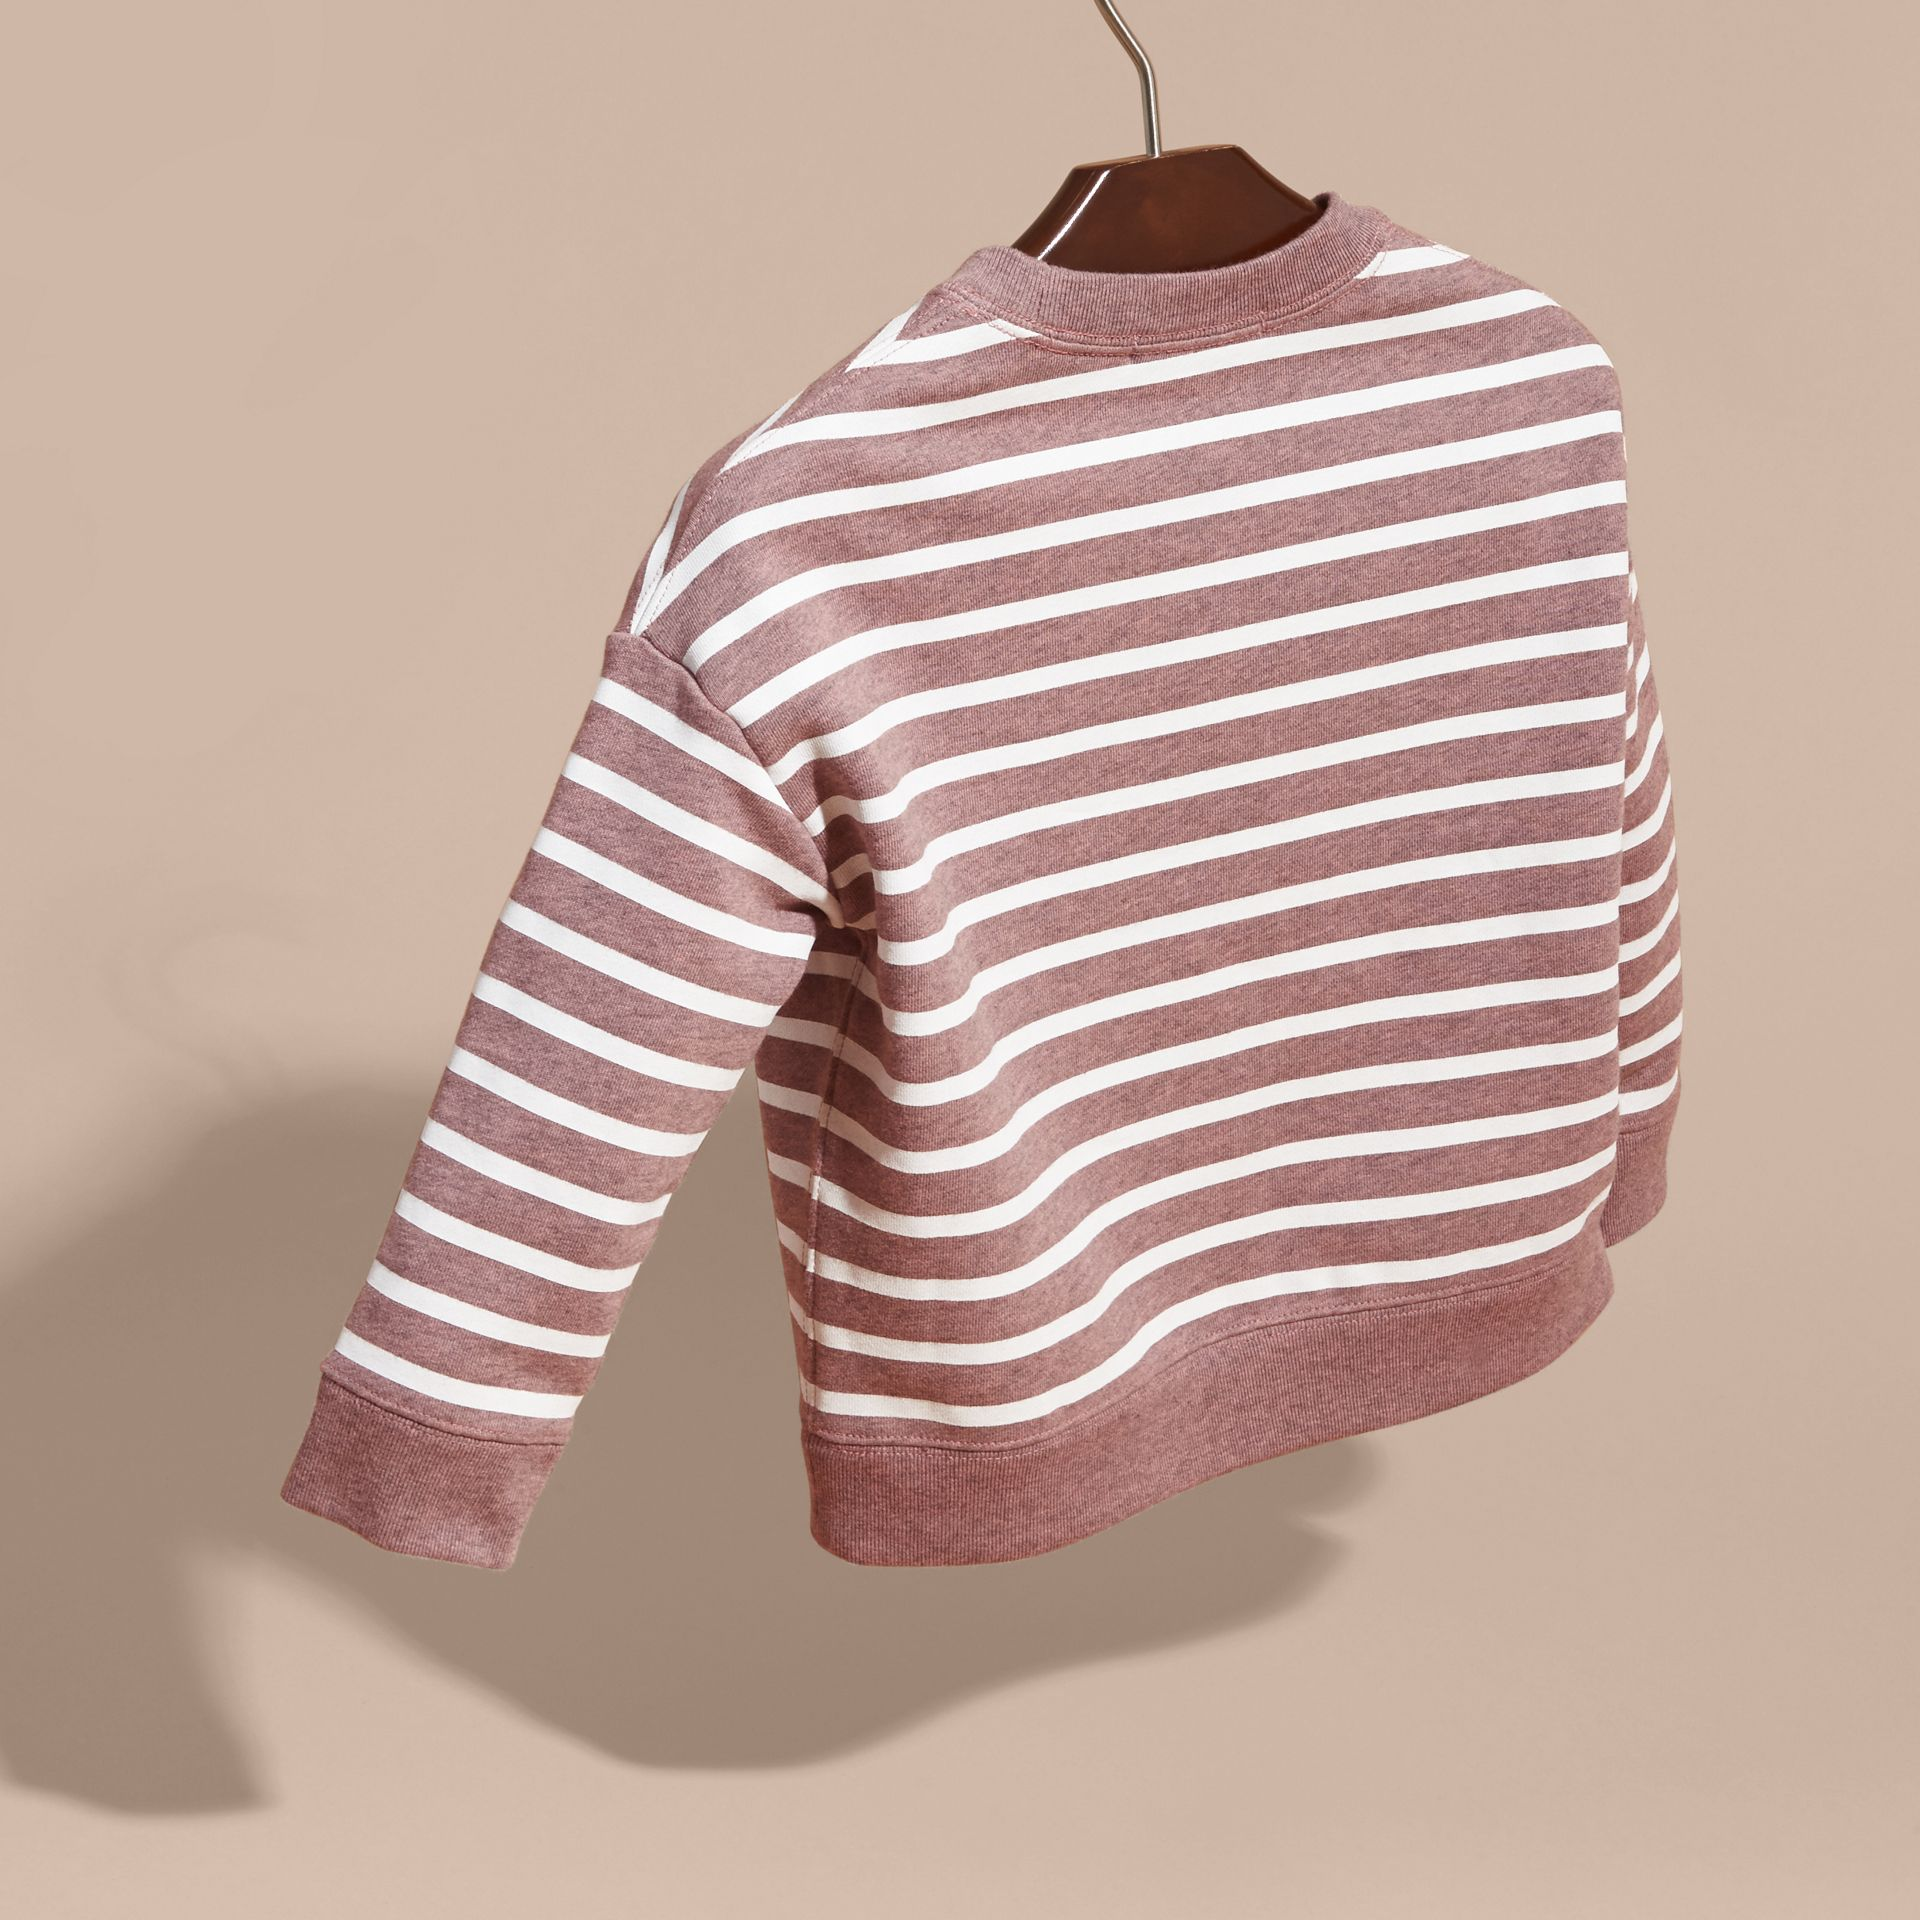 Striped Cotton Sweatshirt in Pink Azalea Melange - gallery image 4